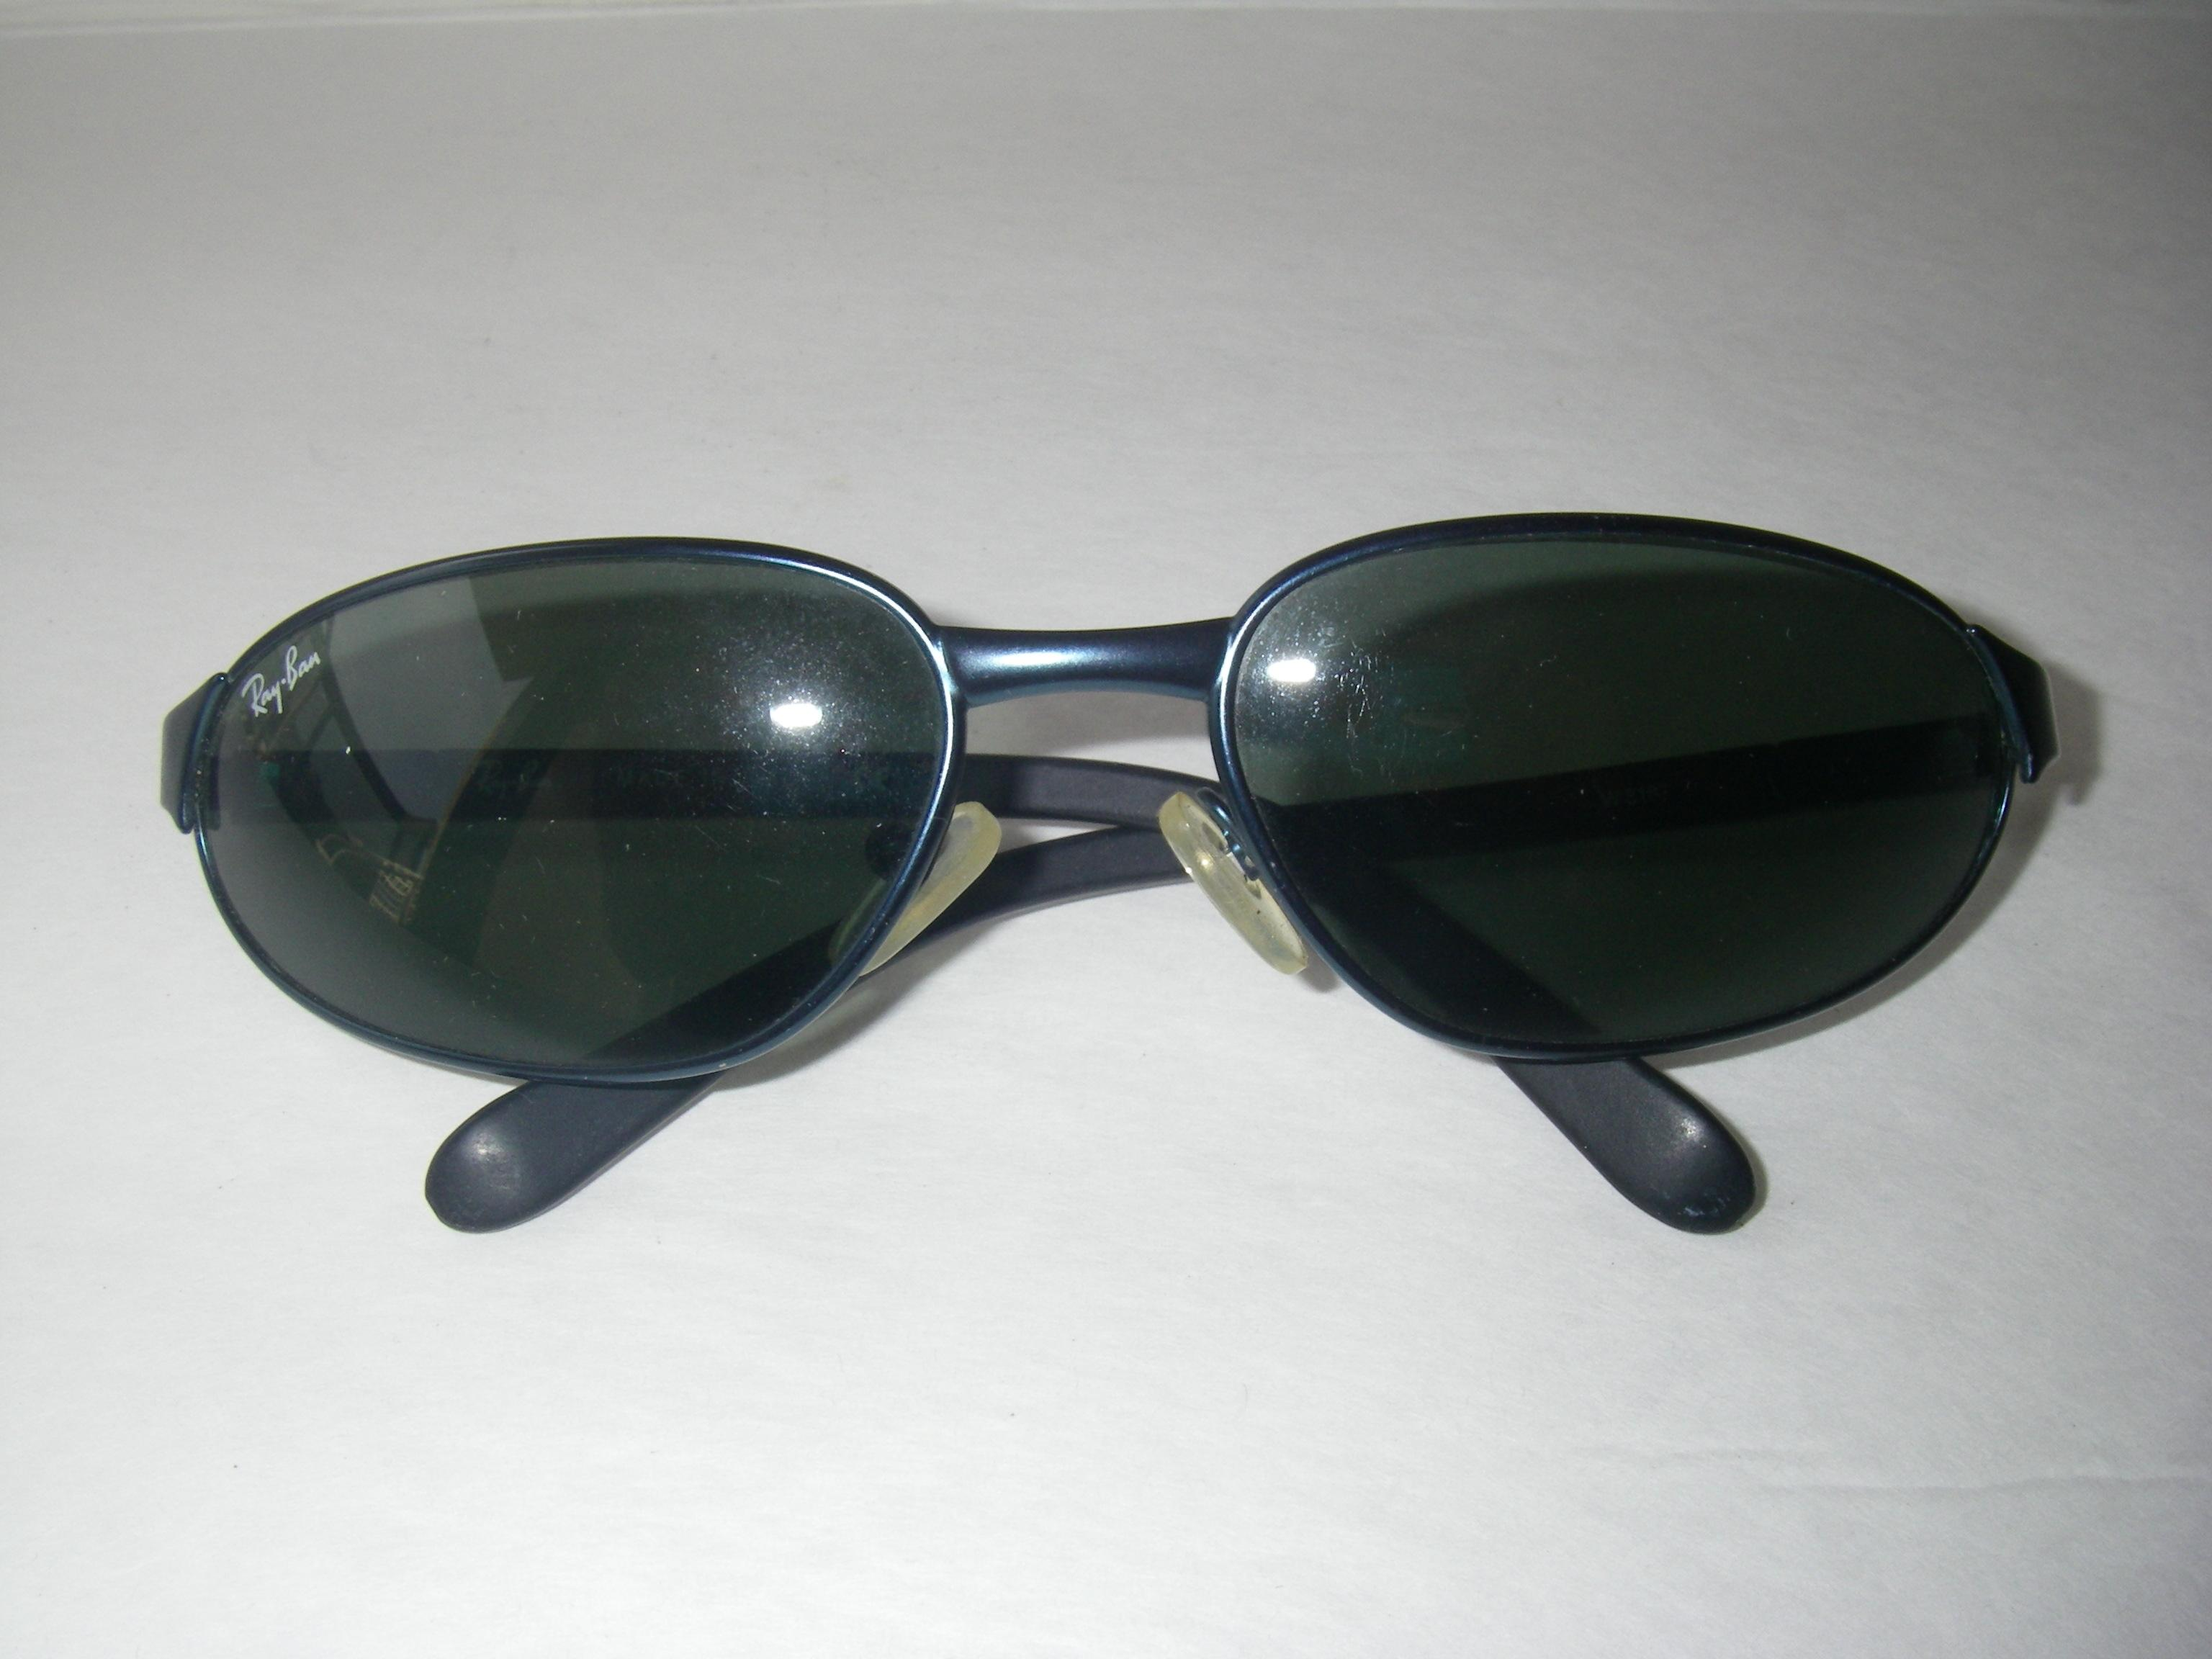 f18d6f5ff ... coupon code for ray ban rb3107 w3167 sunglasses predator sport wrap  made in italy. 123